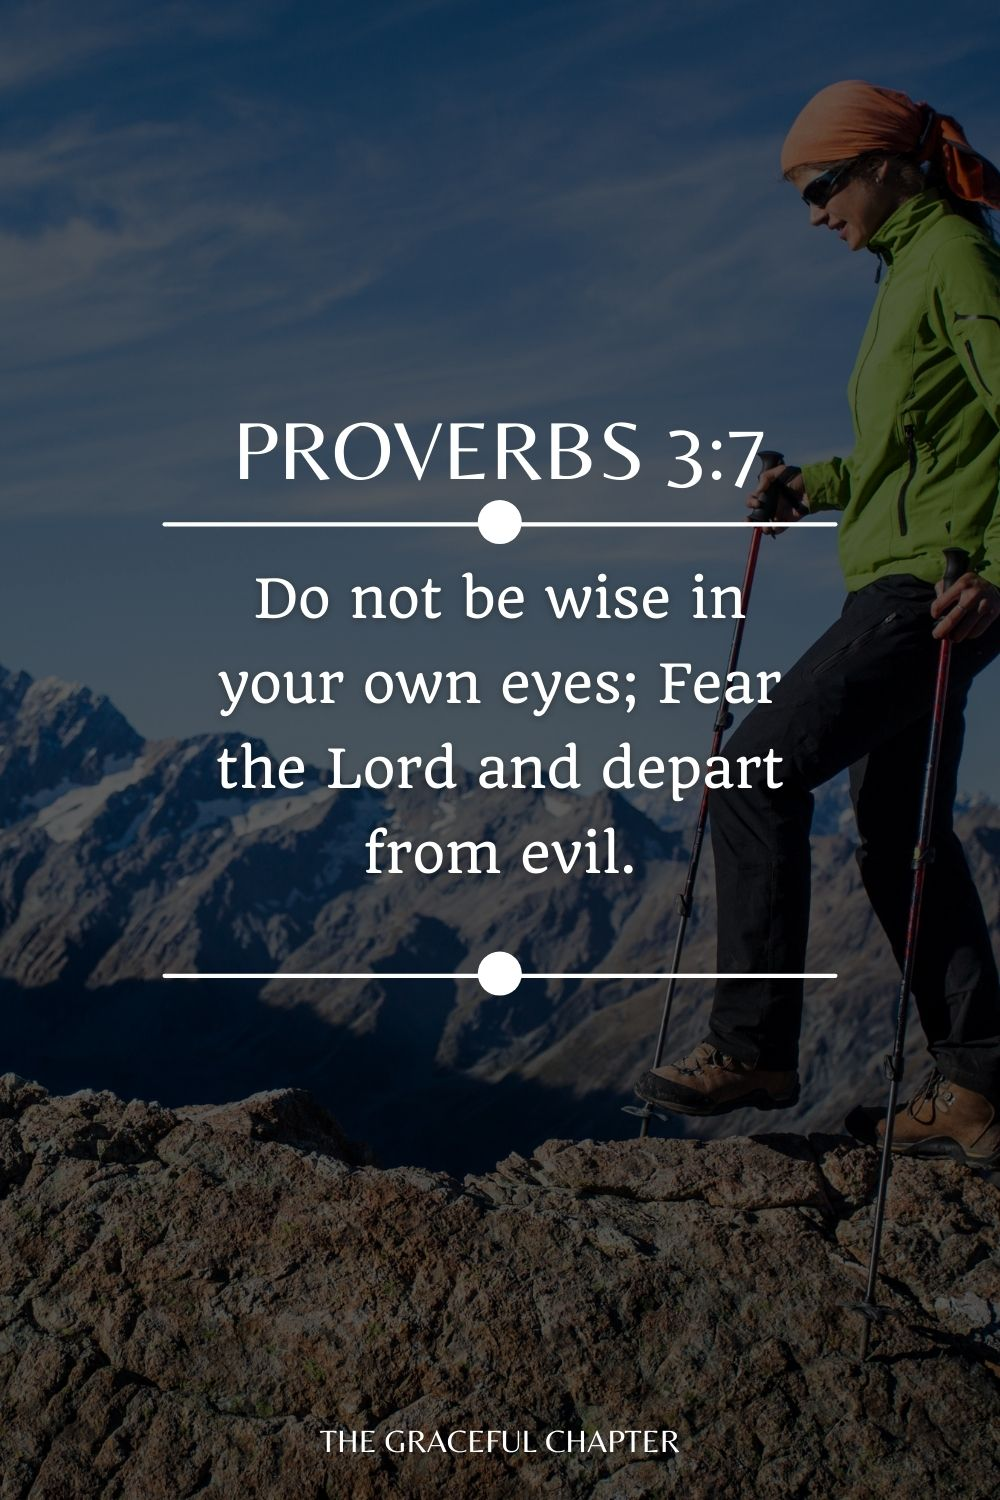 Do not be wise in your own eyes; Fear the Lord and depart from evil. Proverbs 3:7